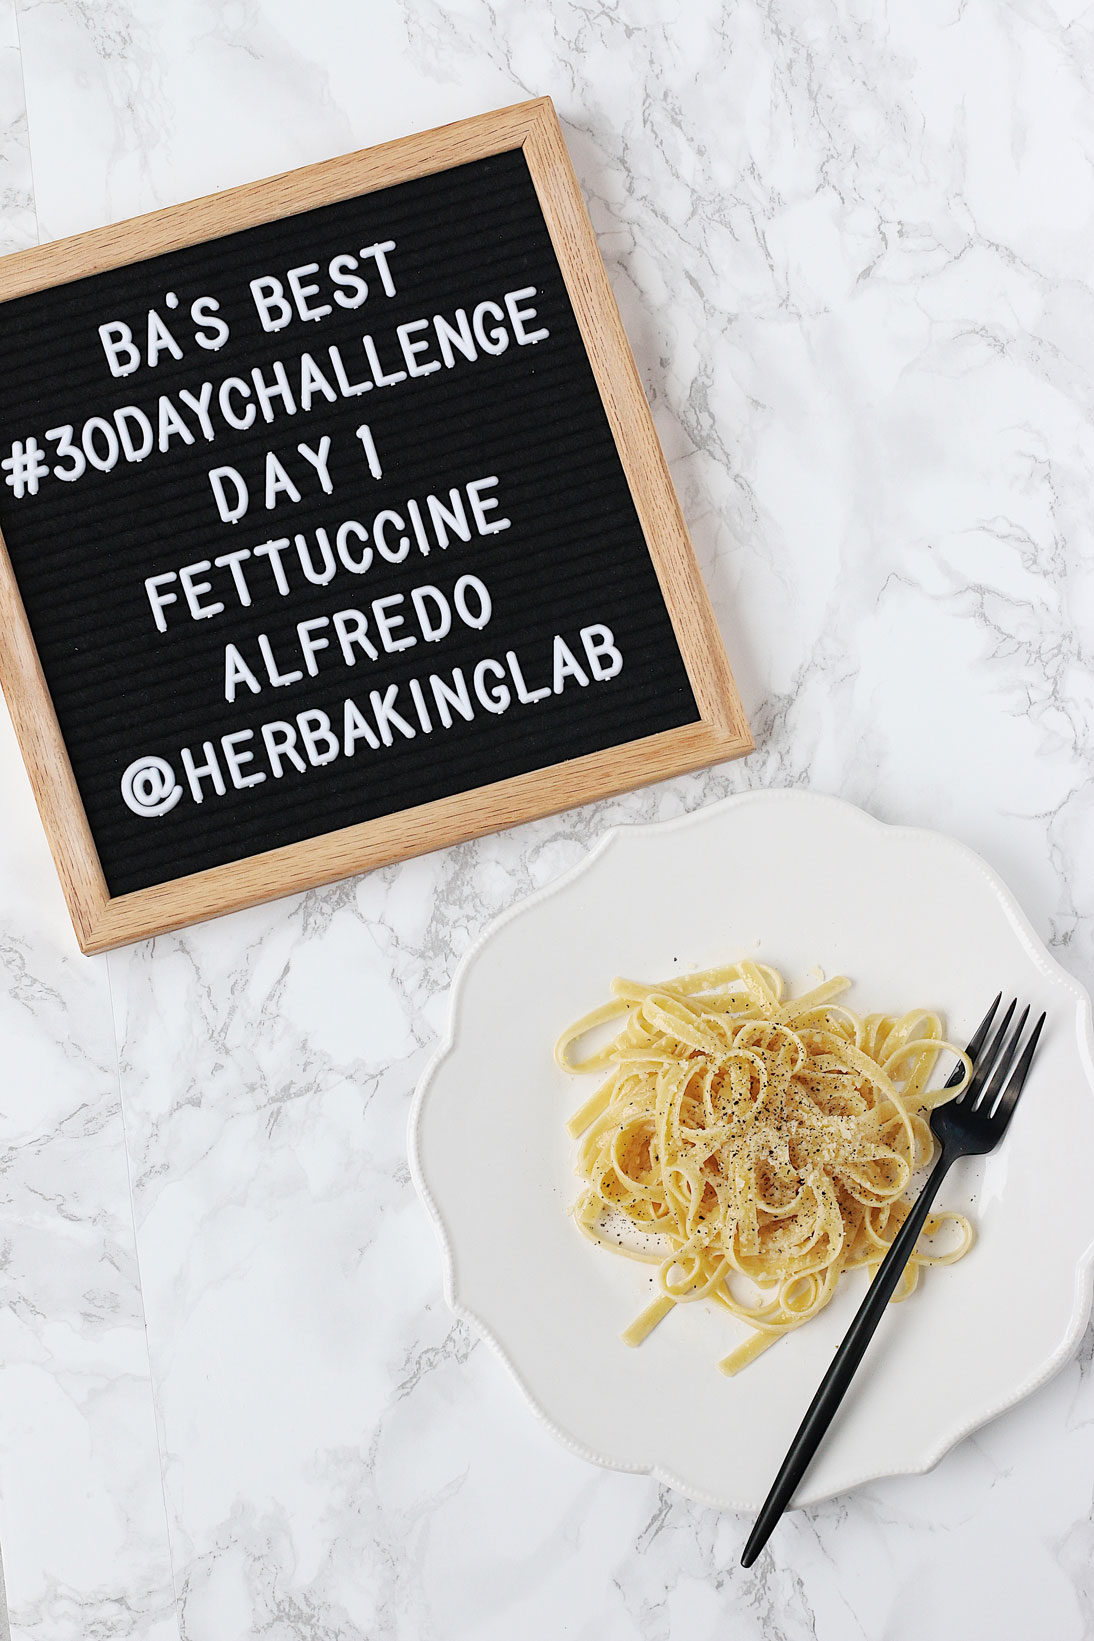 #ba30daychallenge-bon-appetit-best-recipes-day-1-fetticcone-alfredo